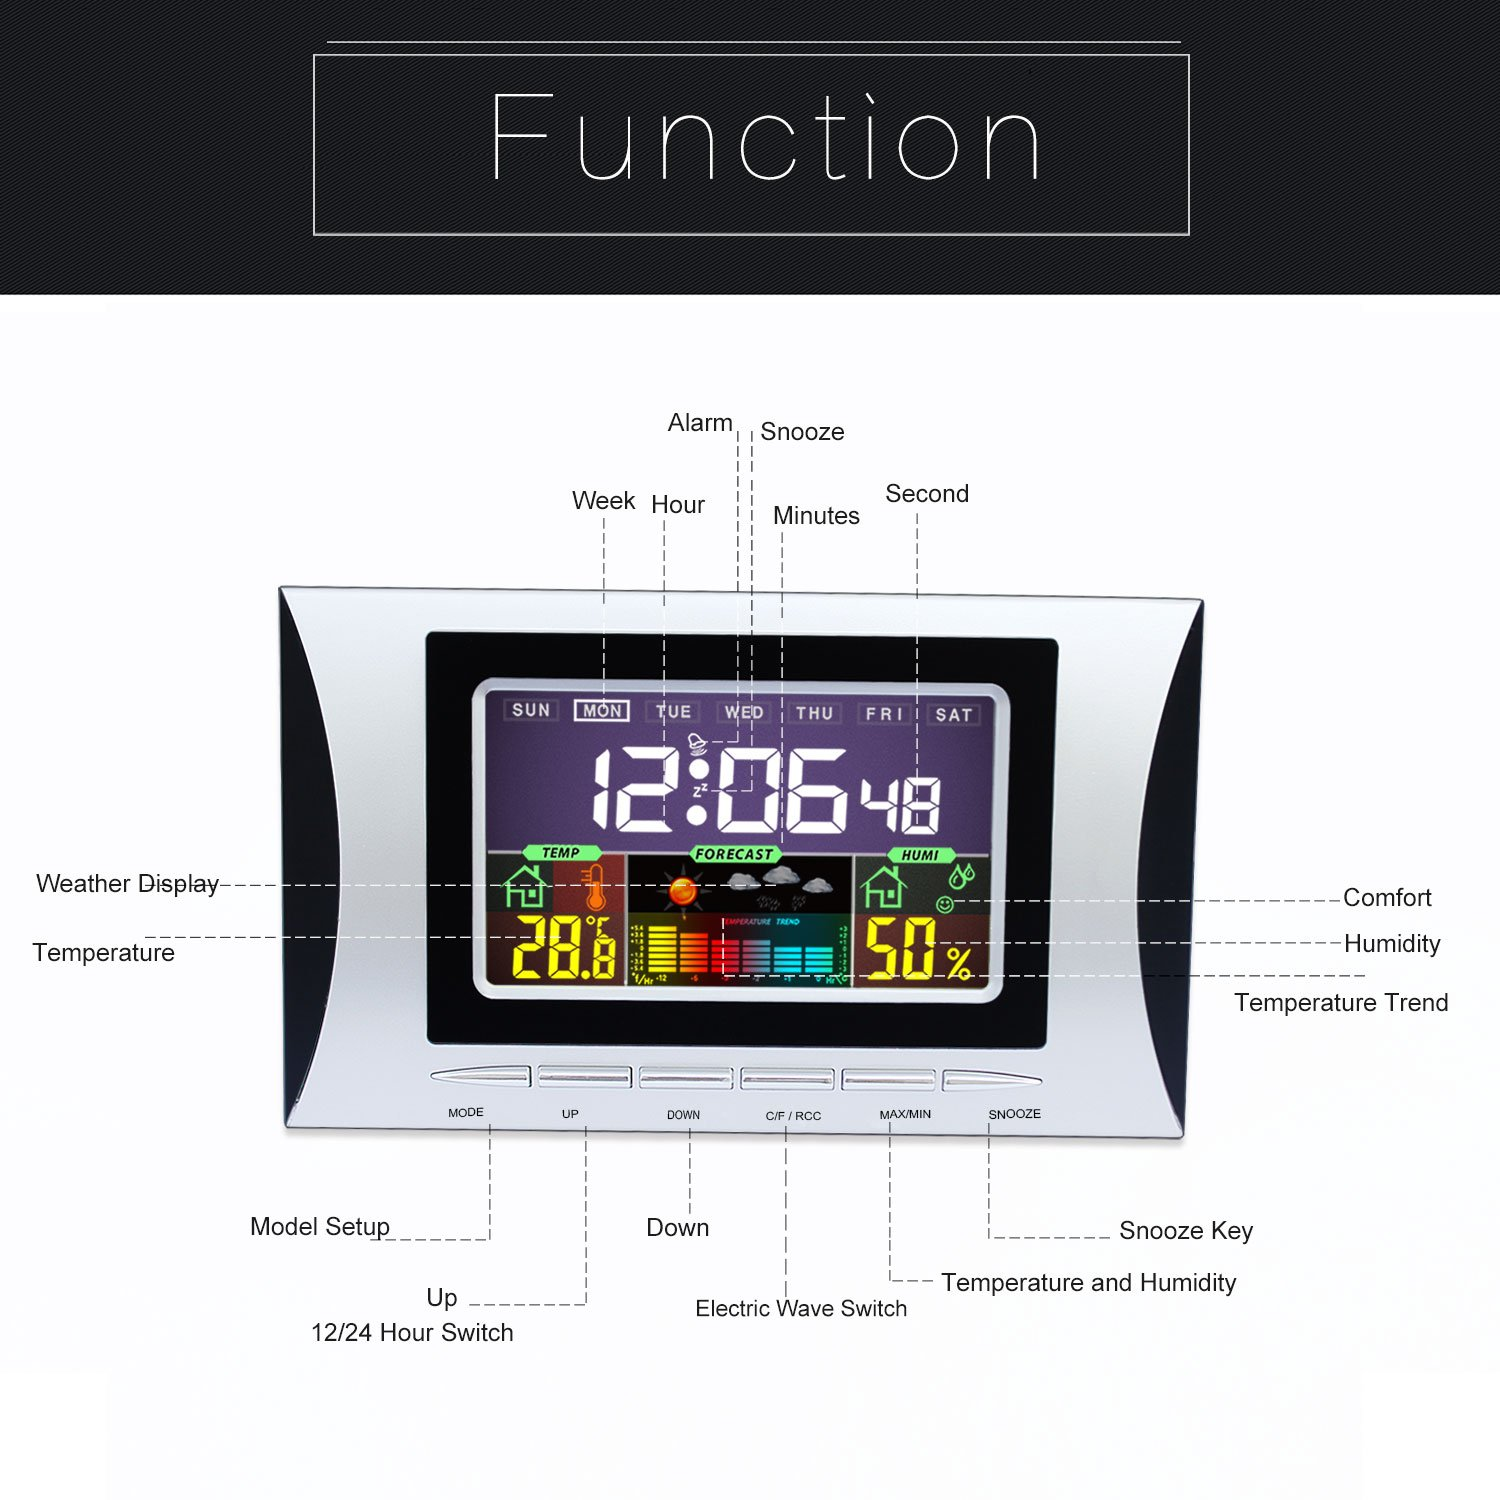 hiyoo Digital Wireless Weather Station with Indoor/Outdoor Wireless Sensor - Higrómetro Termómetro with large Accu Transferencia Temperature and Humidity ...